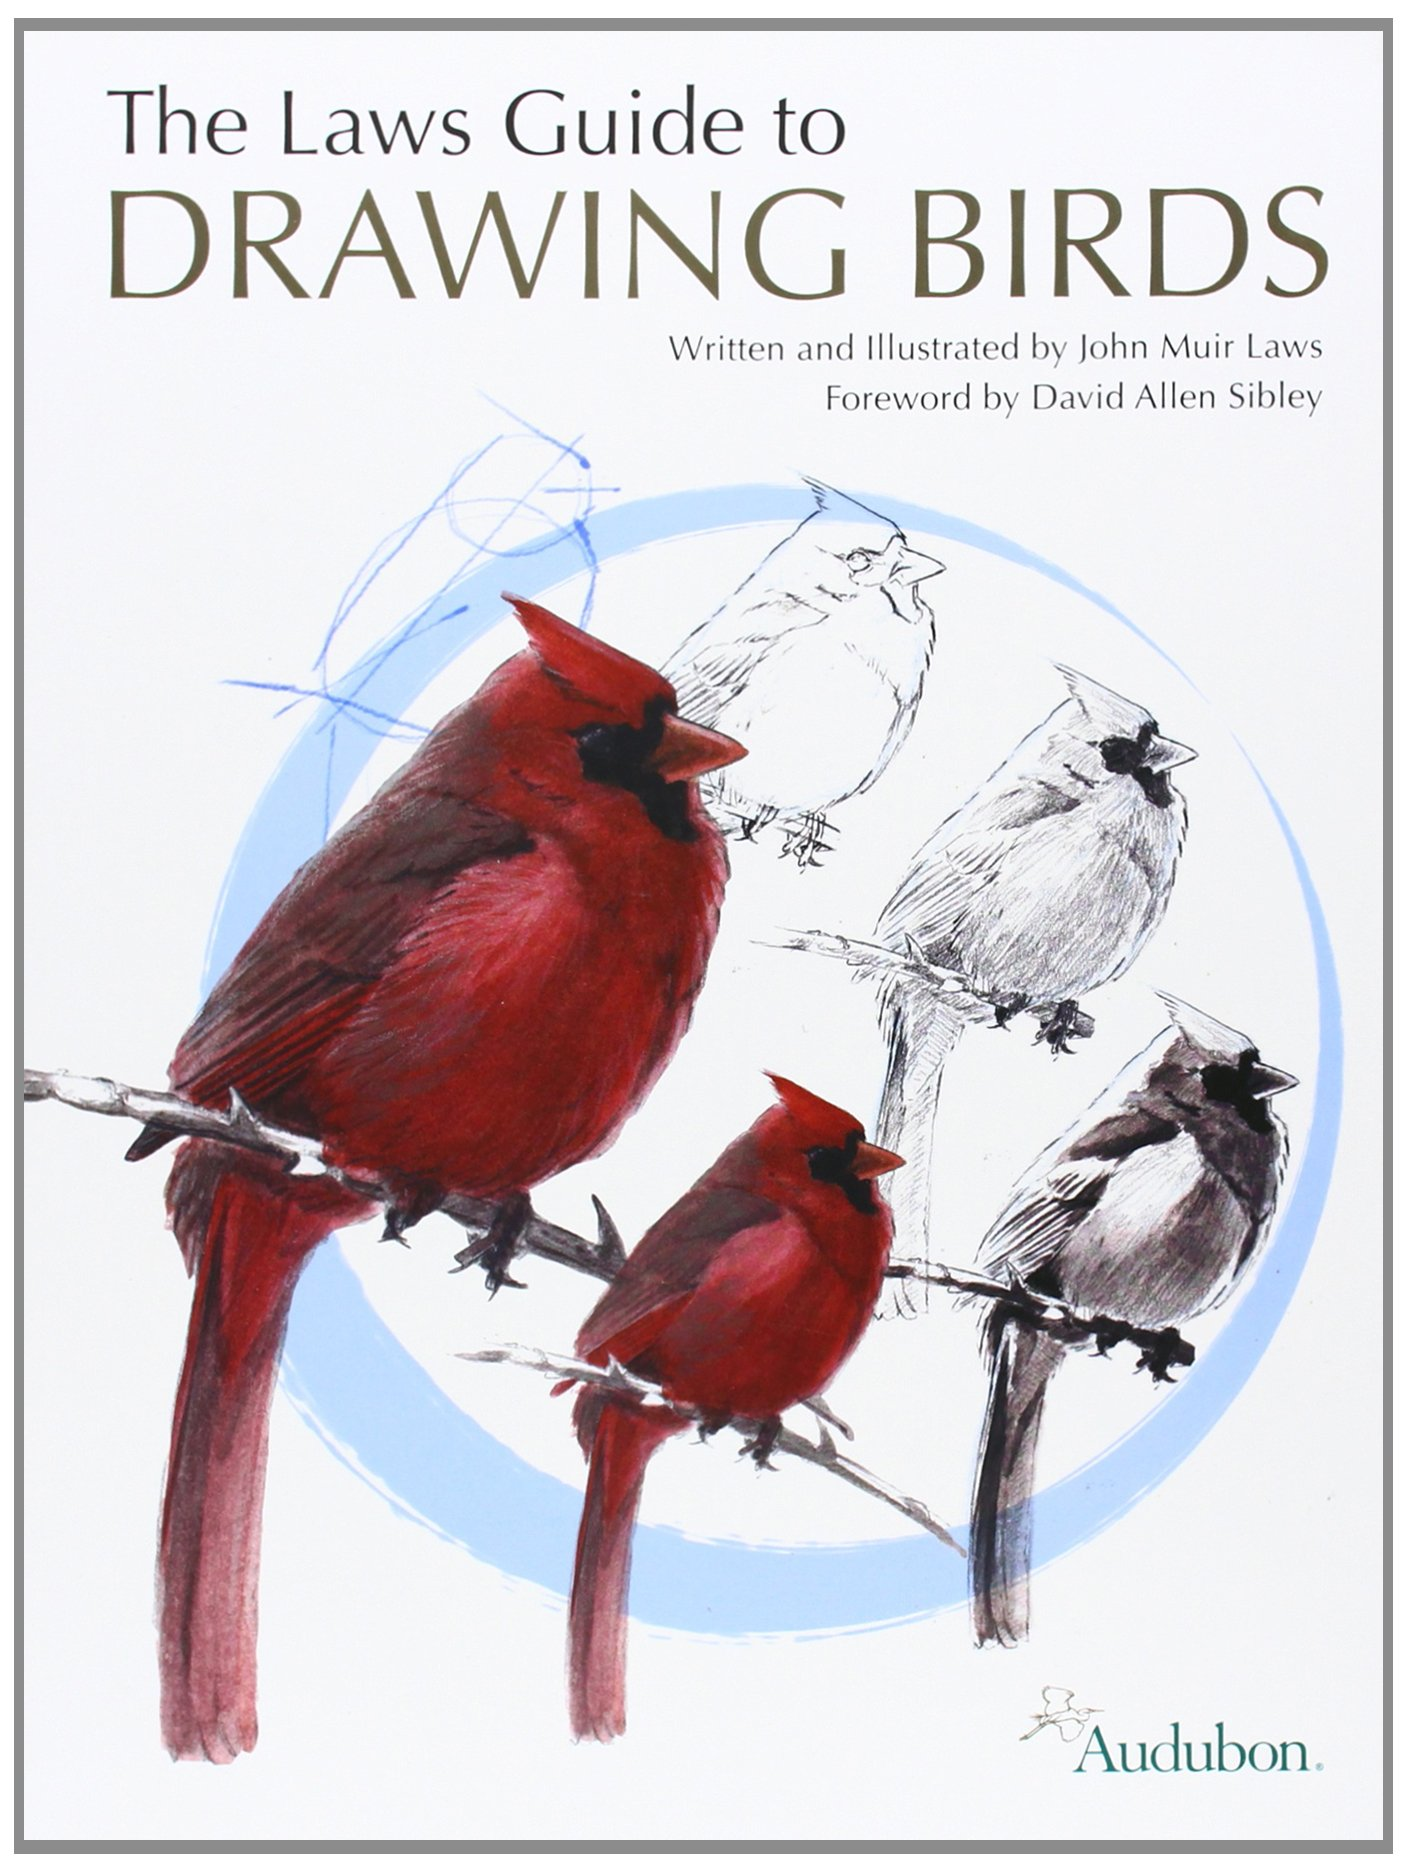 The Laws Guide to Drawing Birds book cover